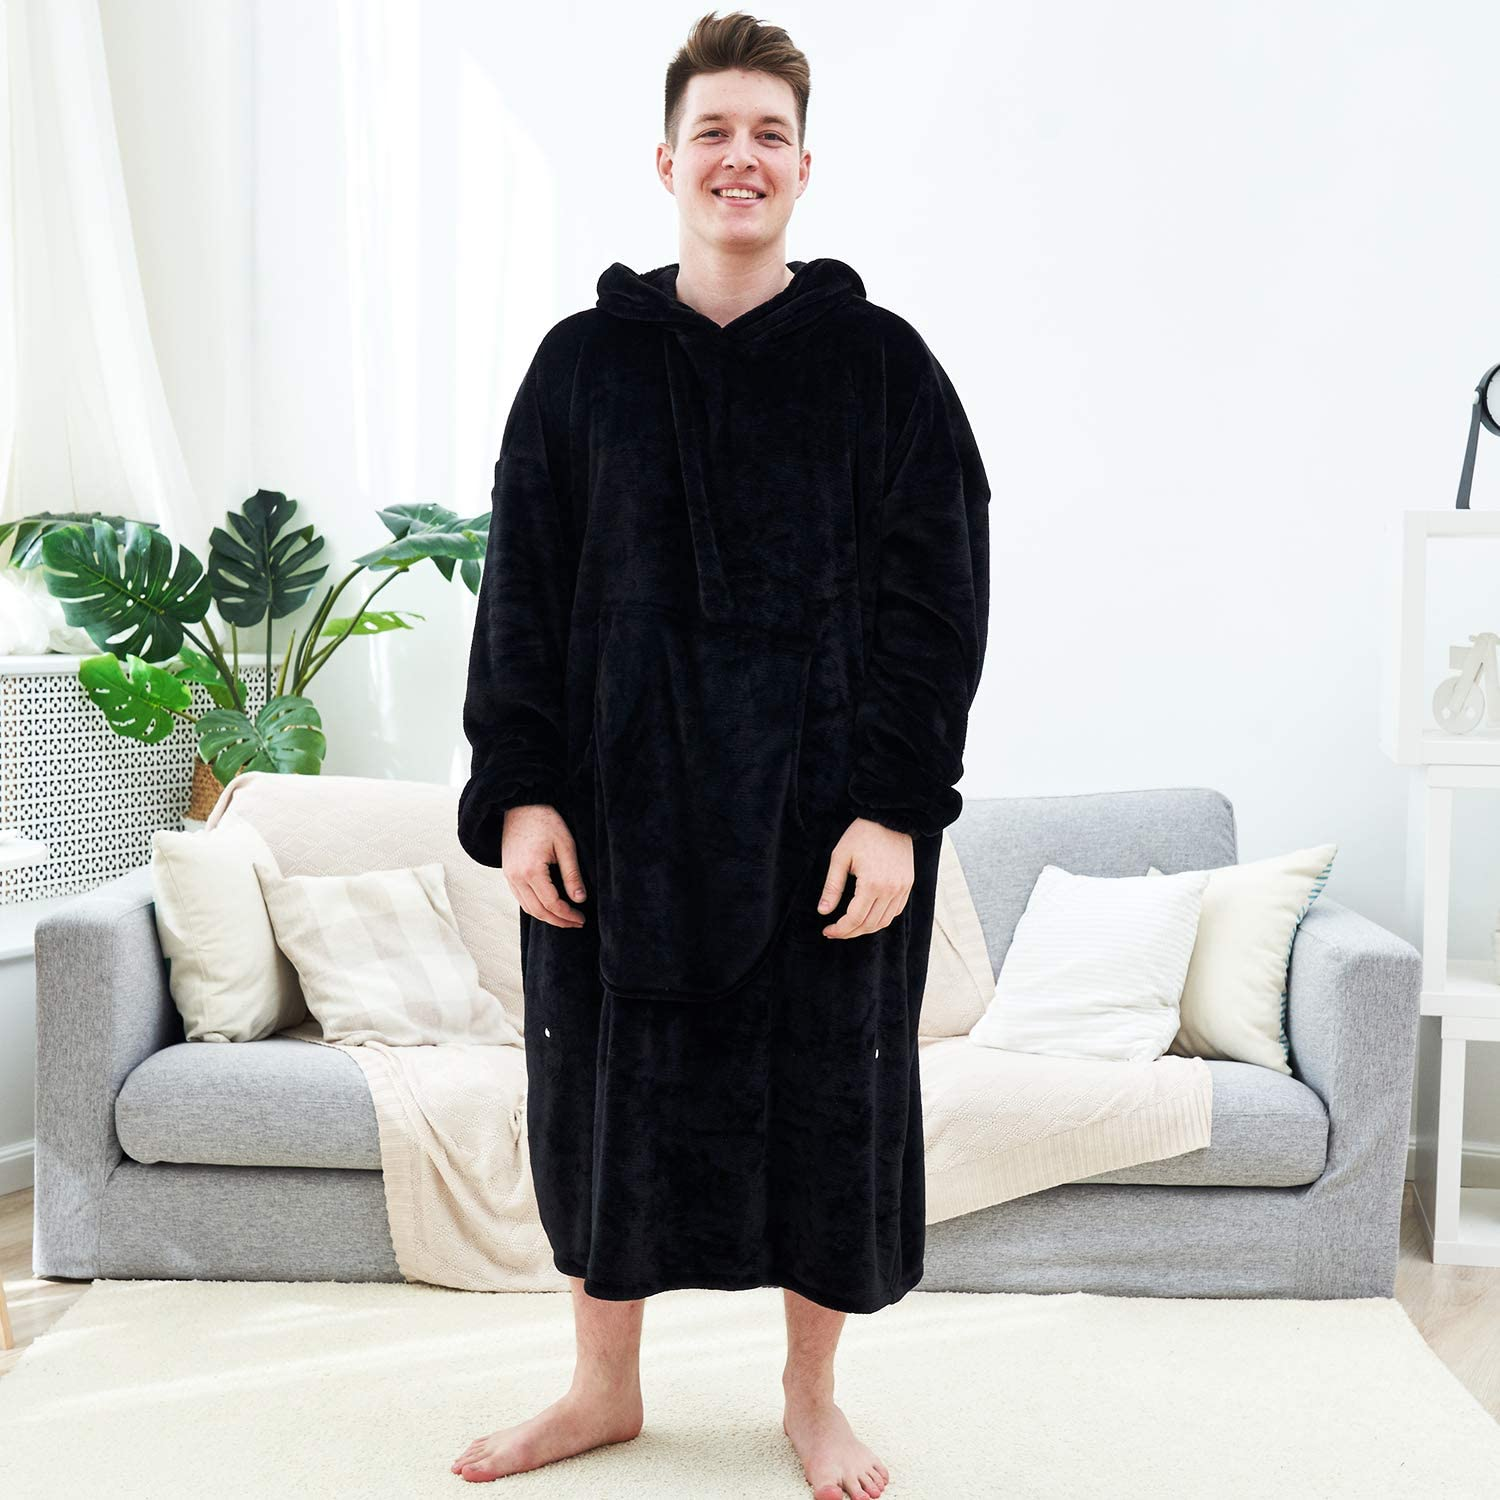 Fomoom Blanket Hoodie, Oversized Sweatshirt Wearable Fleece Flannel Blanket